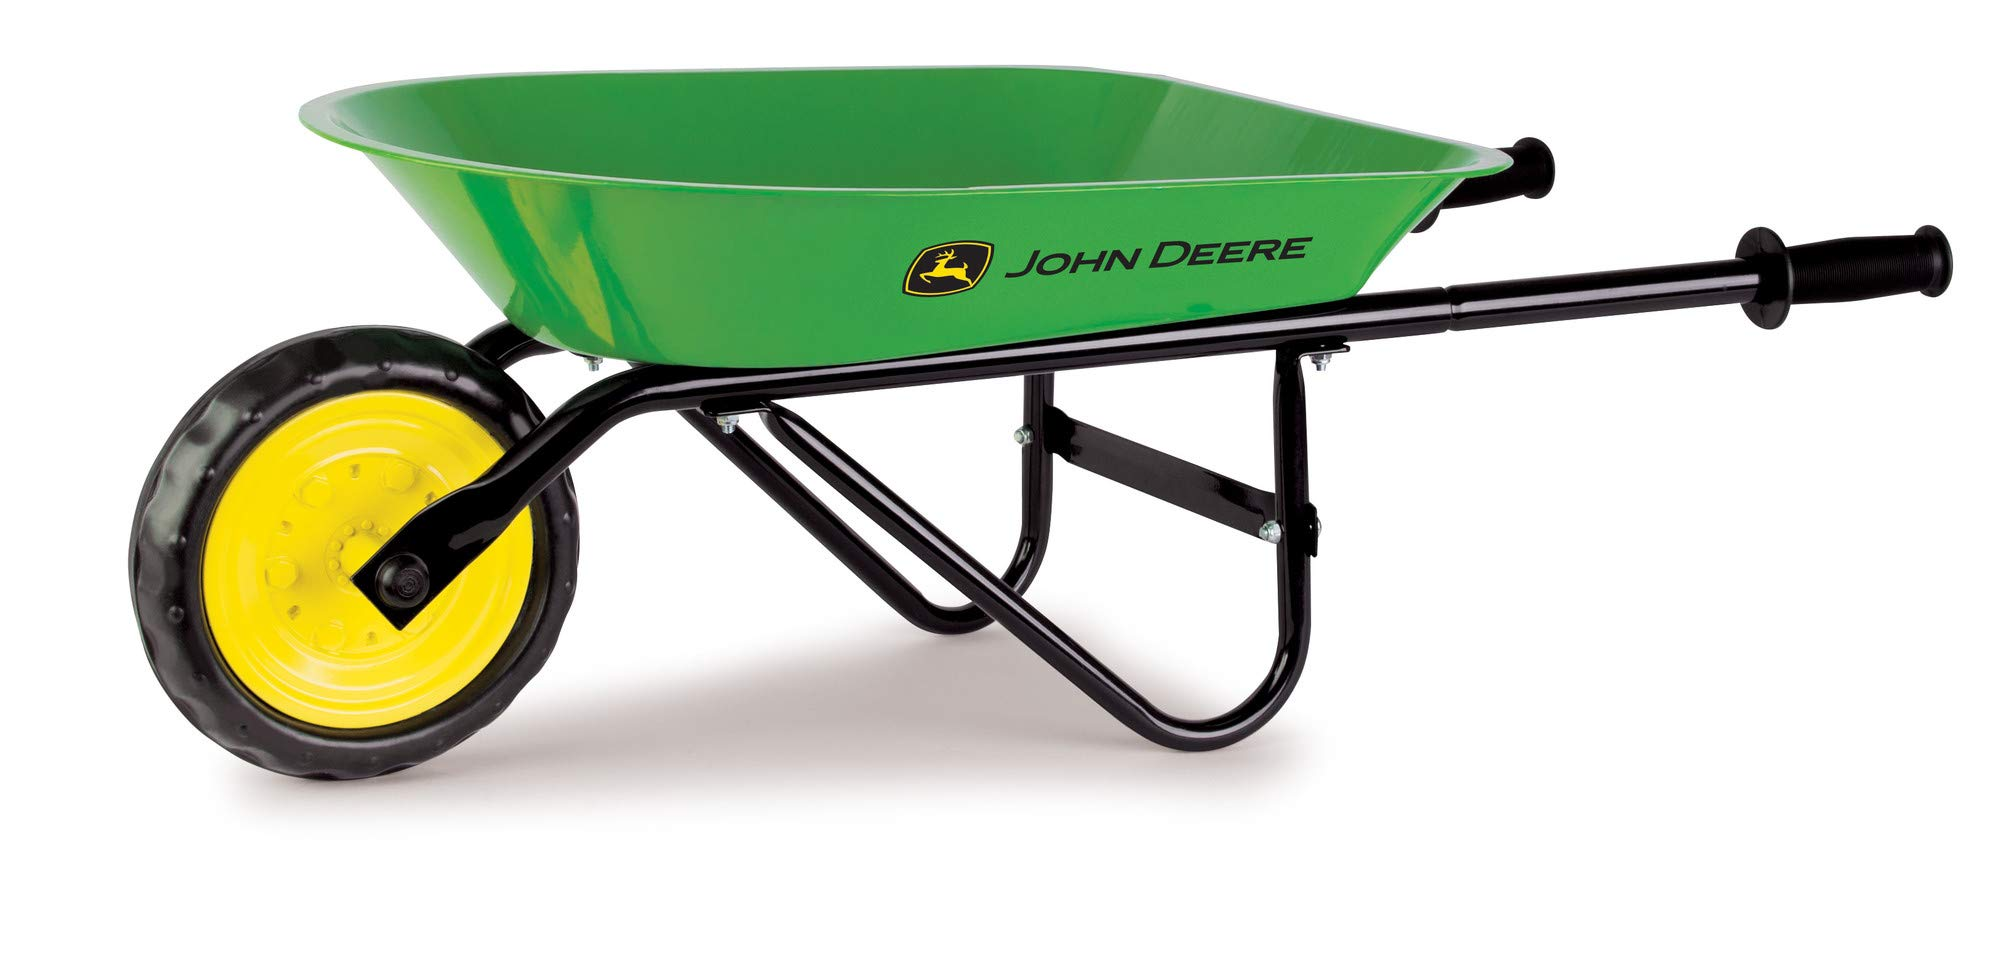 John Deere Steel Wheelbarrow | Sized Right for Kids by John Deere